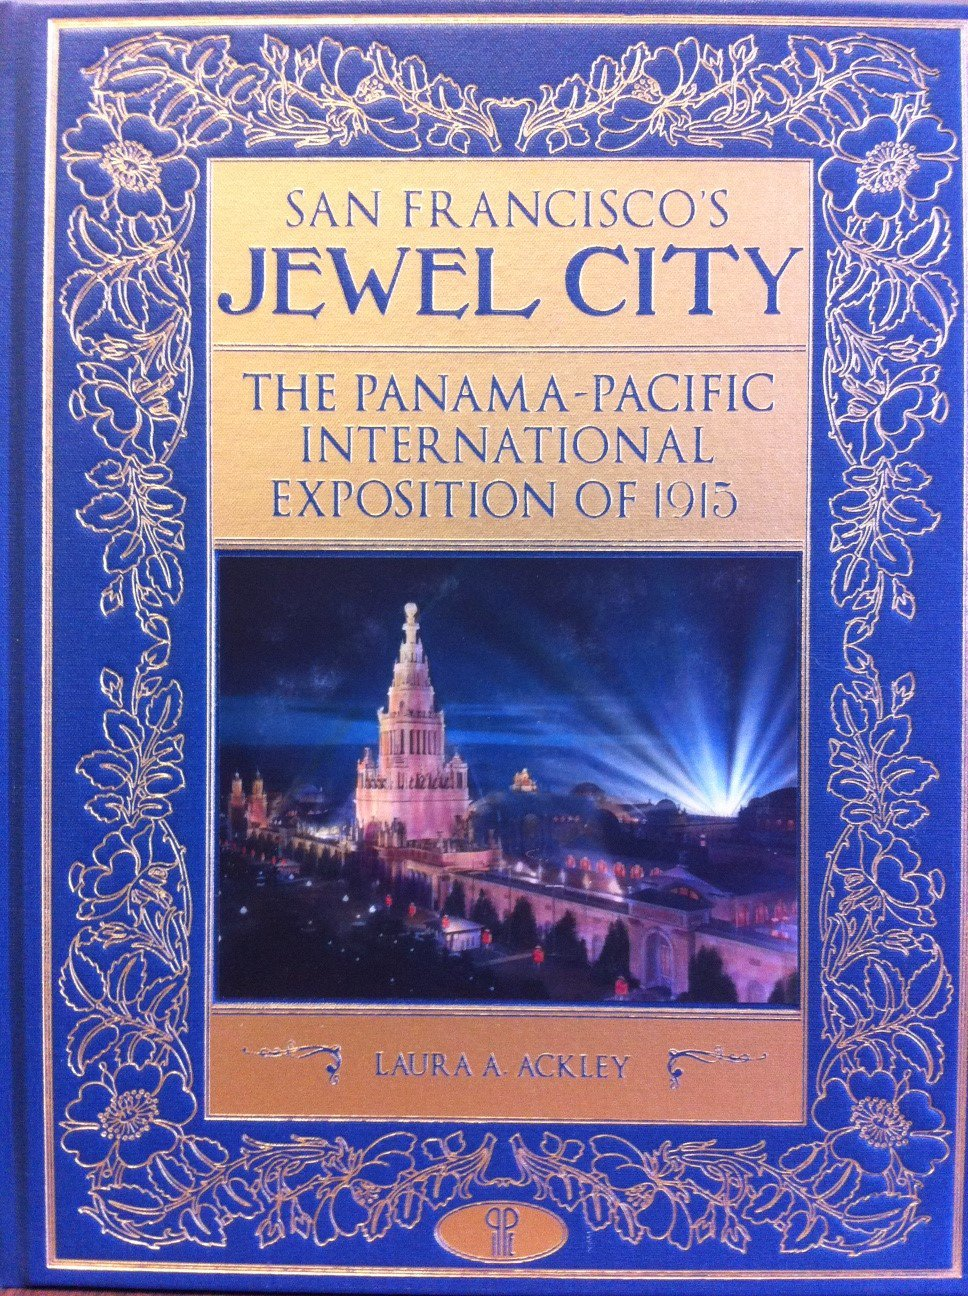 San Francisco's Jewel City - The Panama-Pacific International Exposition of 1915